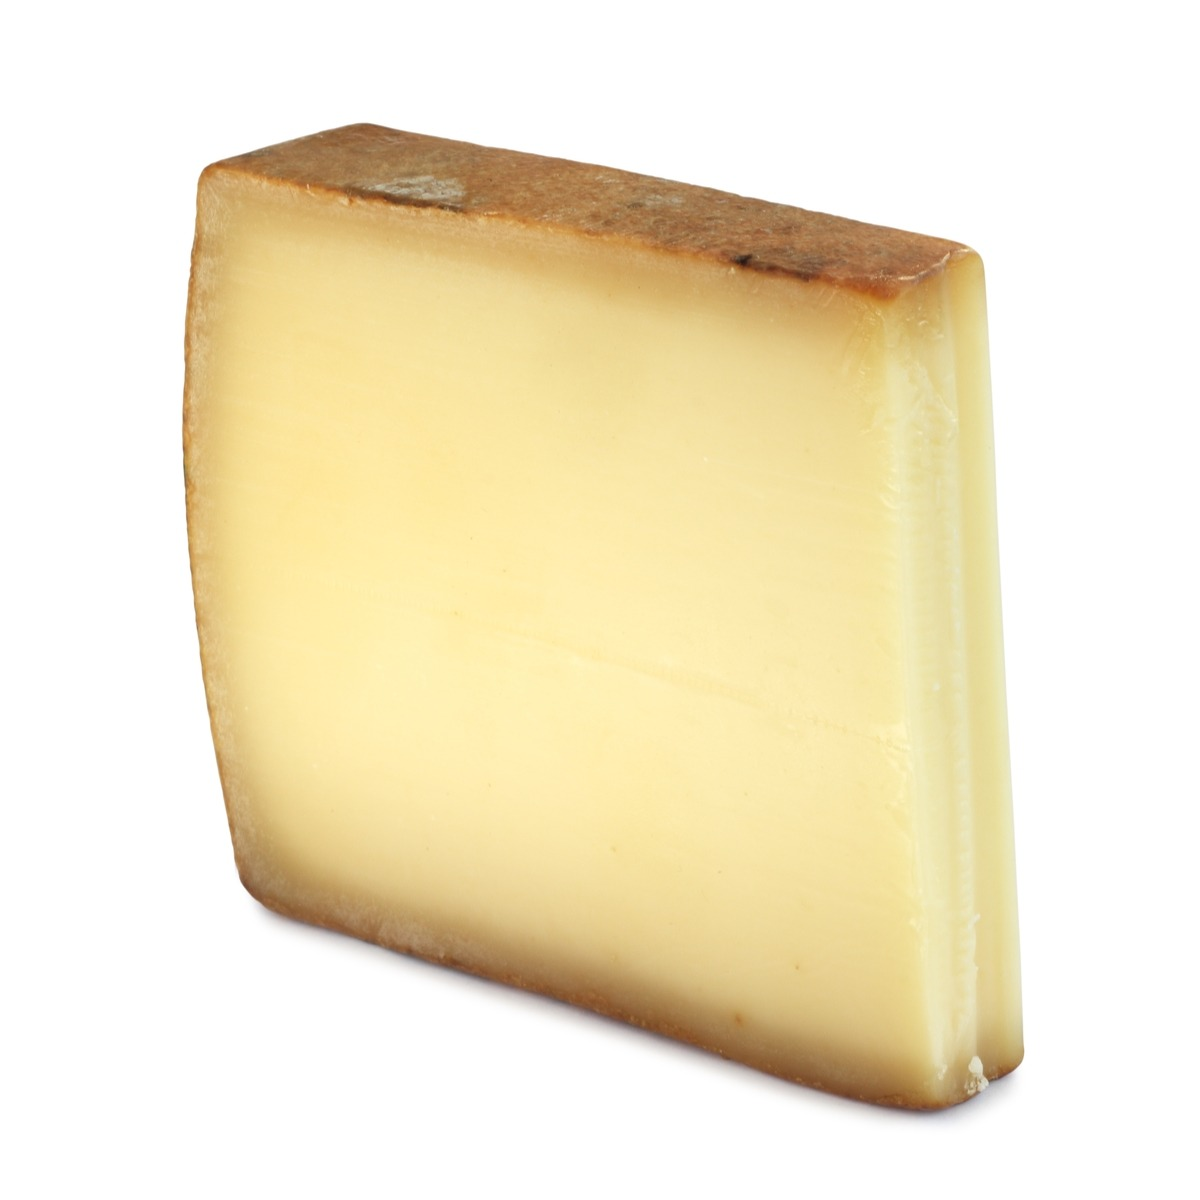 Comte, cheese, French, alpine